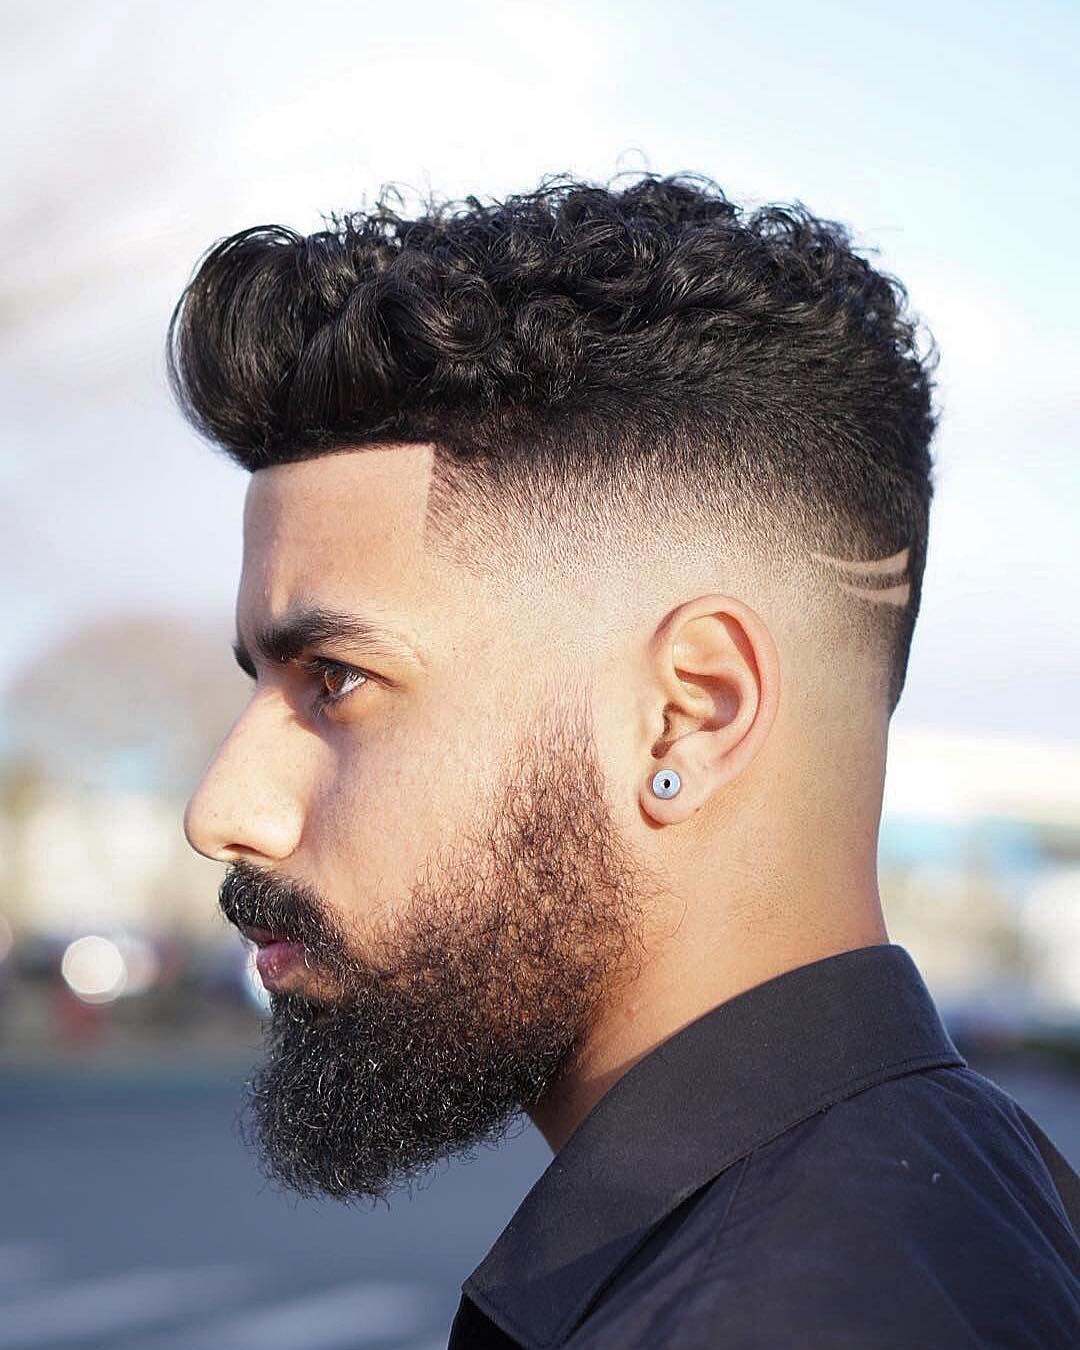 Short Haircut For Curly Hair + Hair Design + Beard